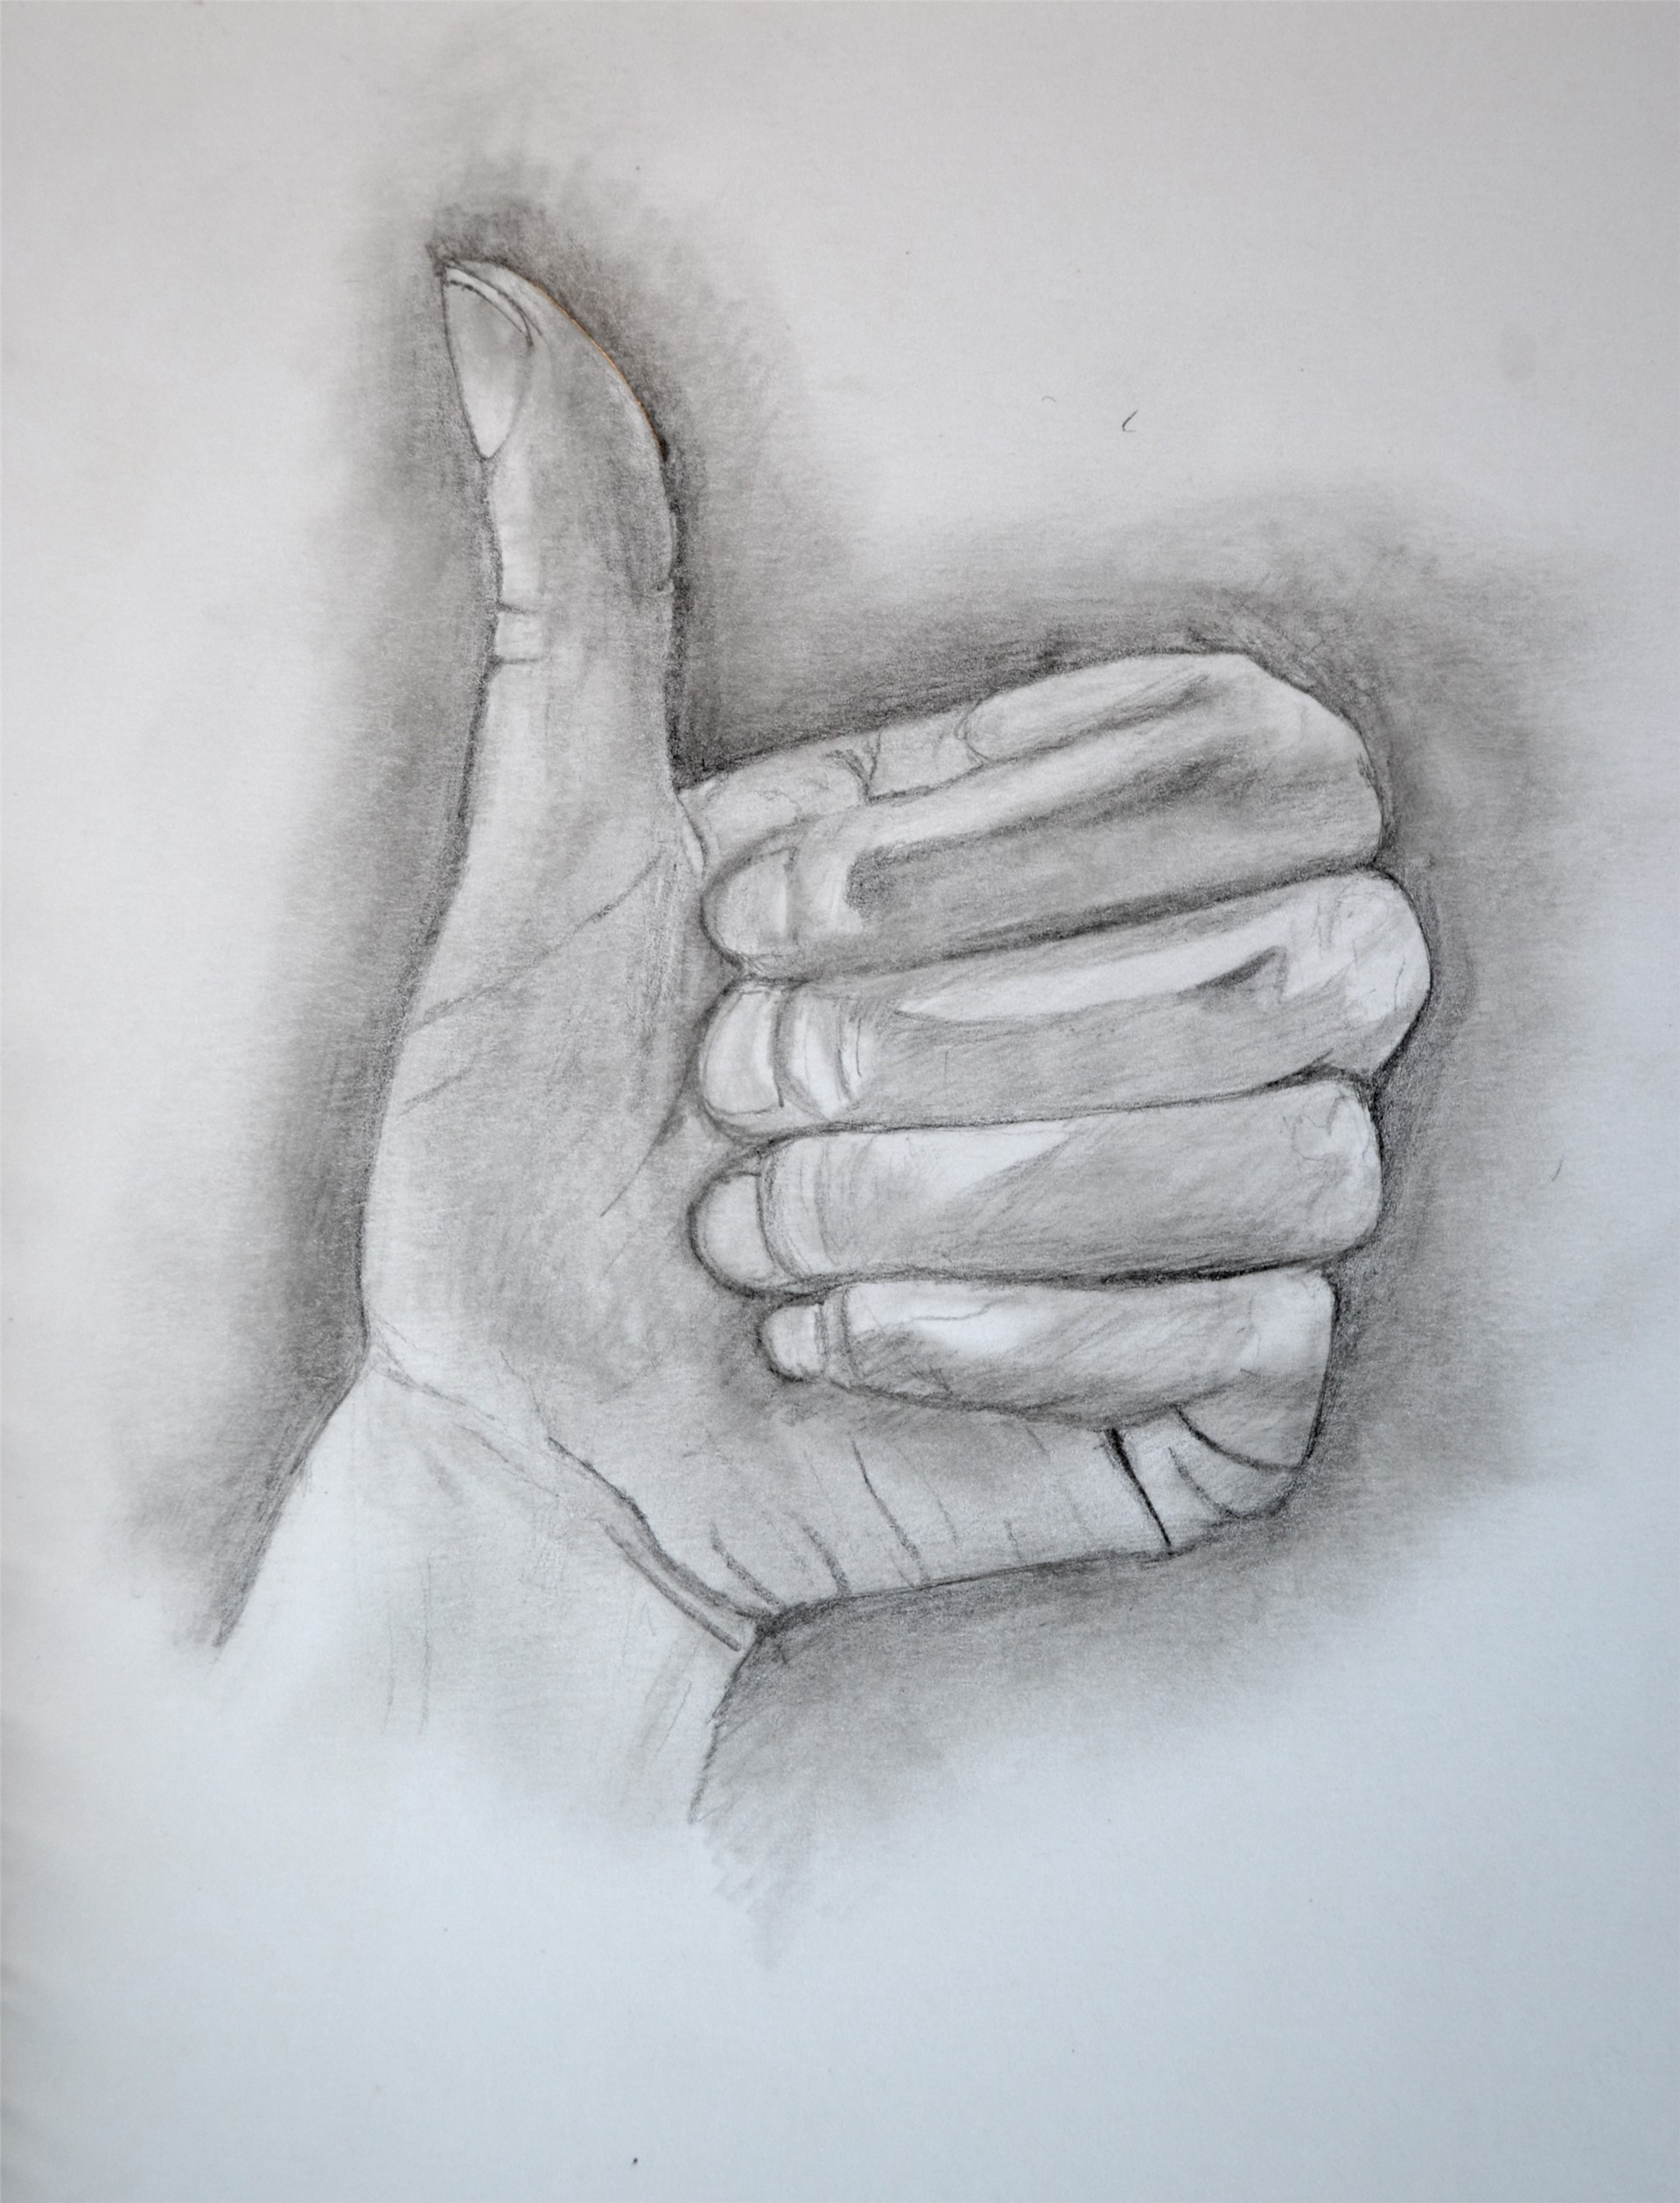 CORY NORDBERG, Prelinary Hand Drawing, graphite, 12 x 9, 2015